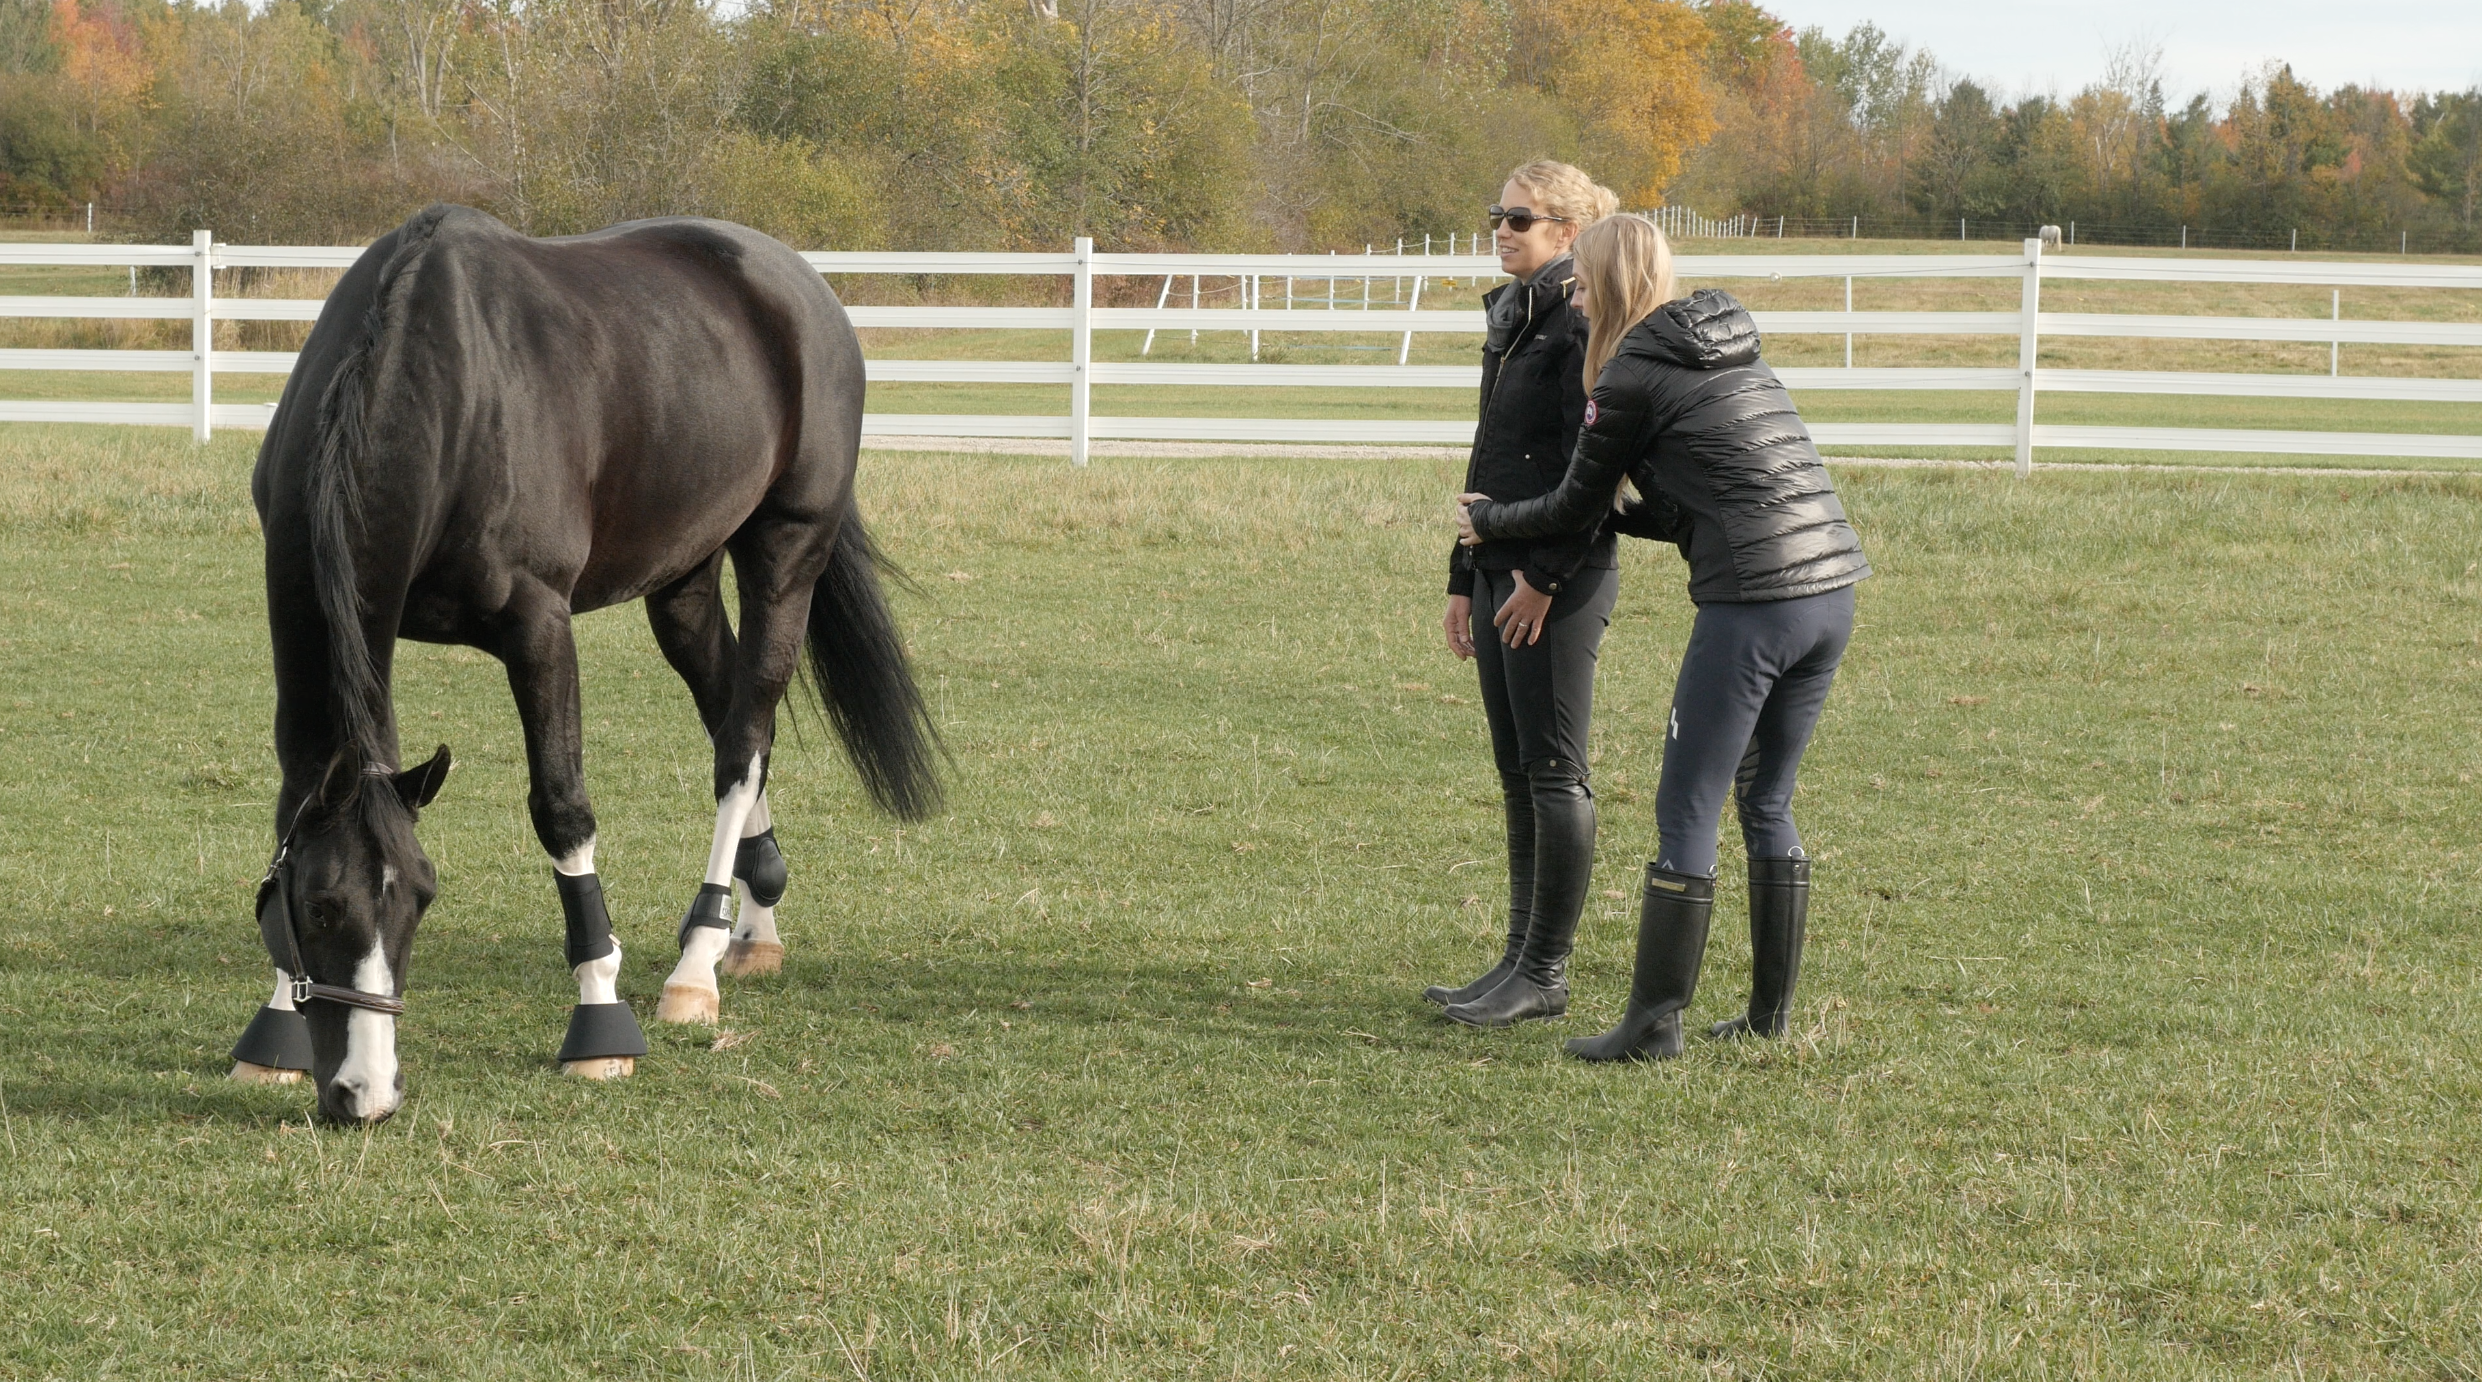 Shelly helping Amy Millar connect with her horse at the sacral chakra.